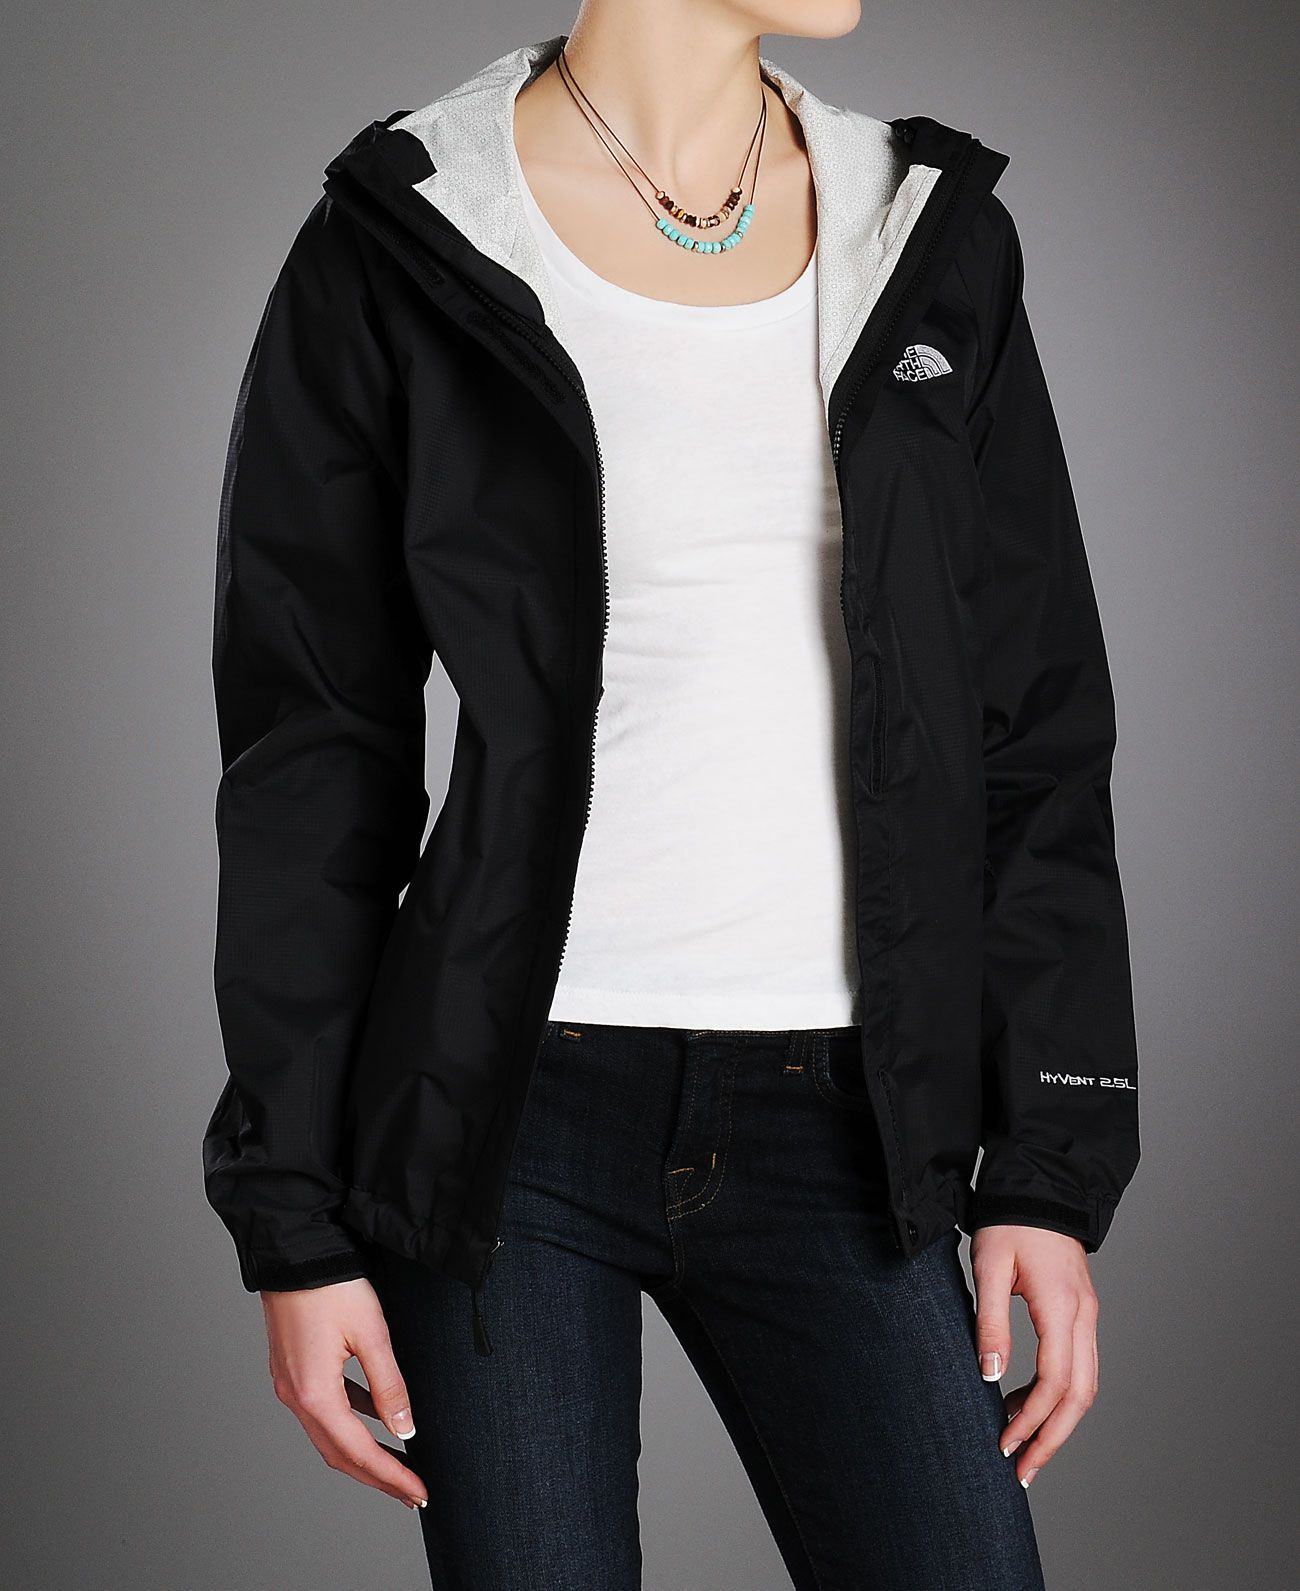 A light jacket like this Black Northface windbreaker is great to throw on when heading out!